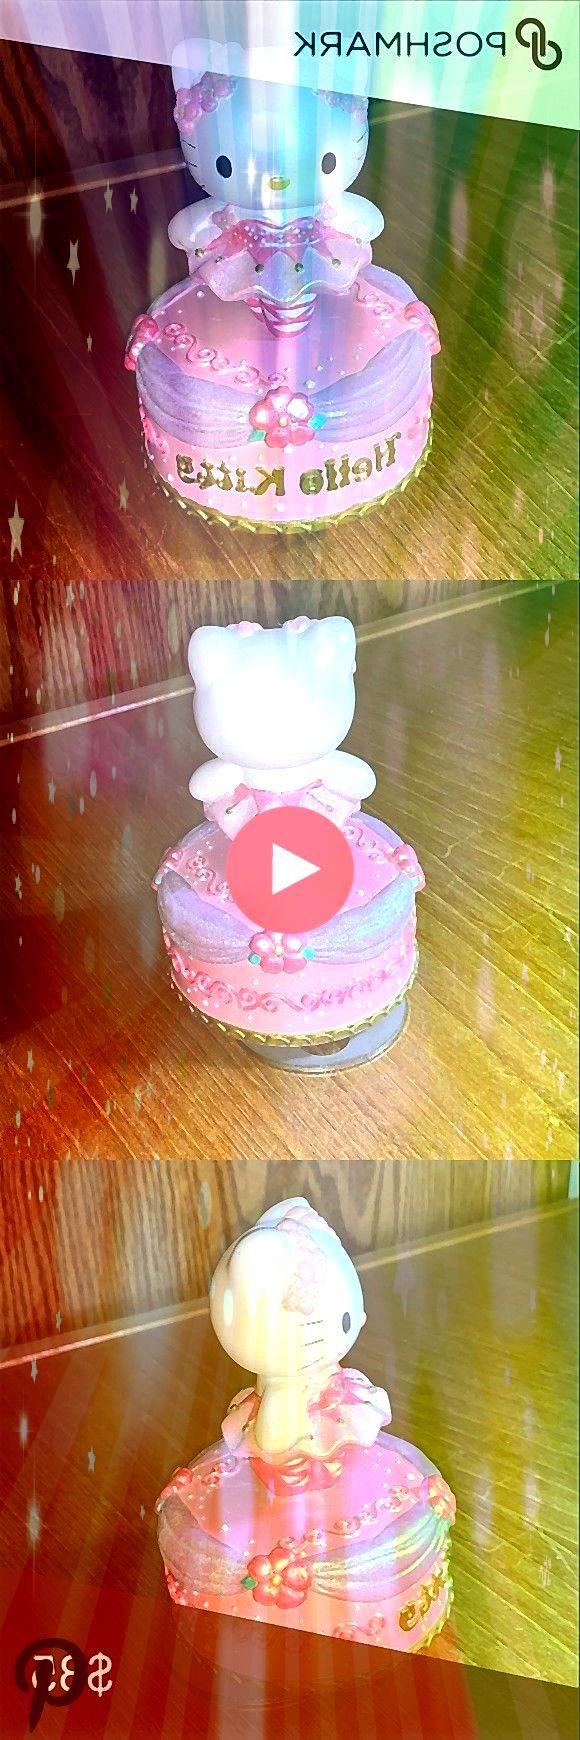 vintage Hello Kitty rotating music box In good condition Probably bought in 2001 Hello Kitt Sanrio vintage Hello Kitty rotating music box In good condition Probably bough...